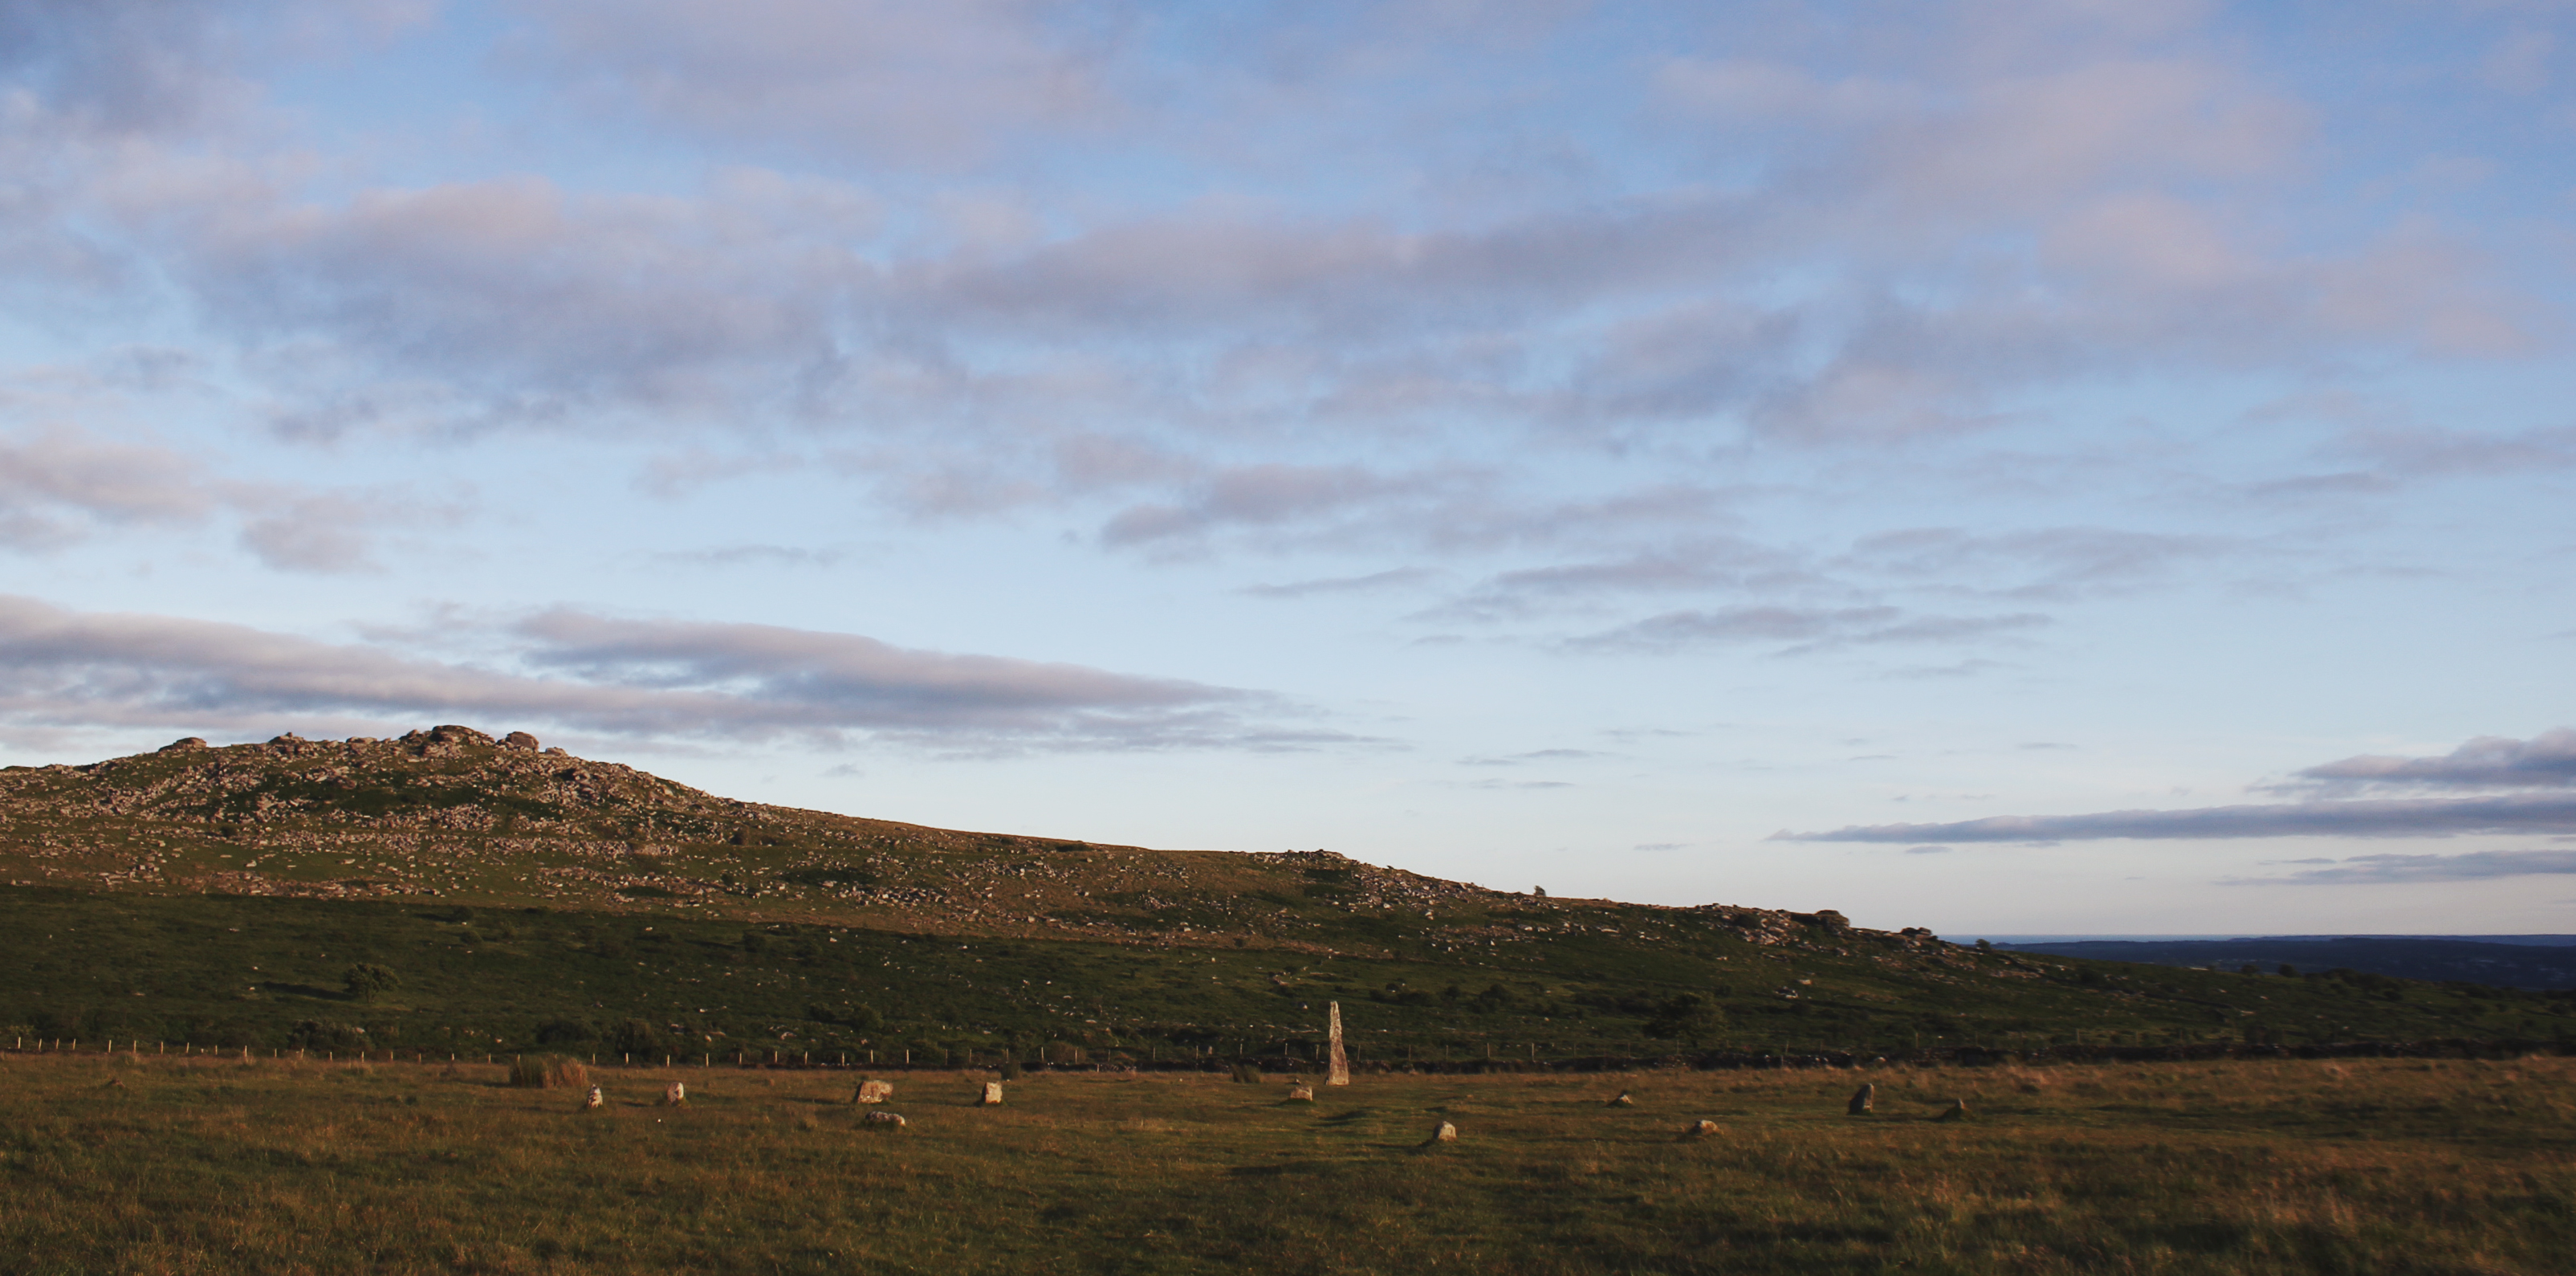 Merrivale Stone Circle and Standing Stone, Dartmoor